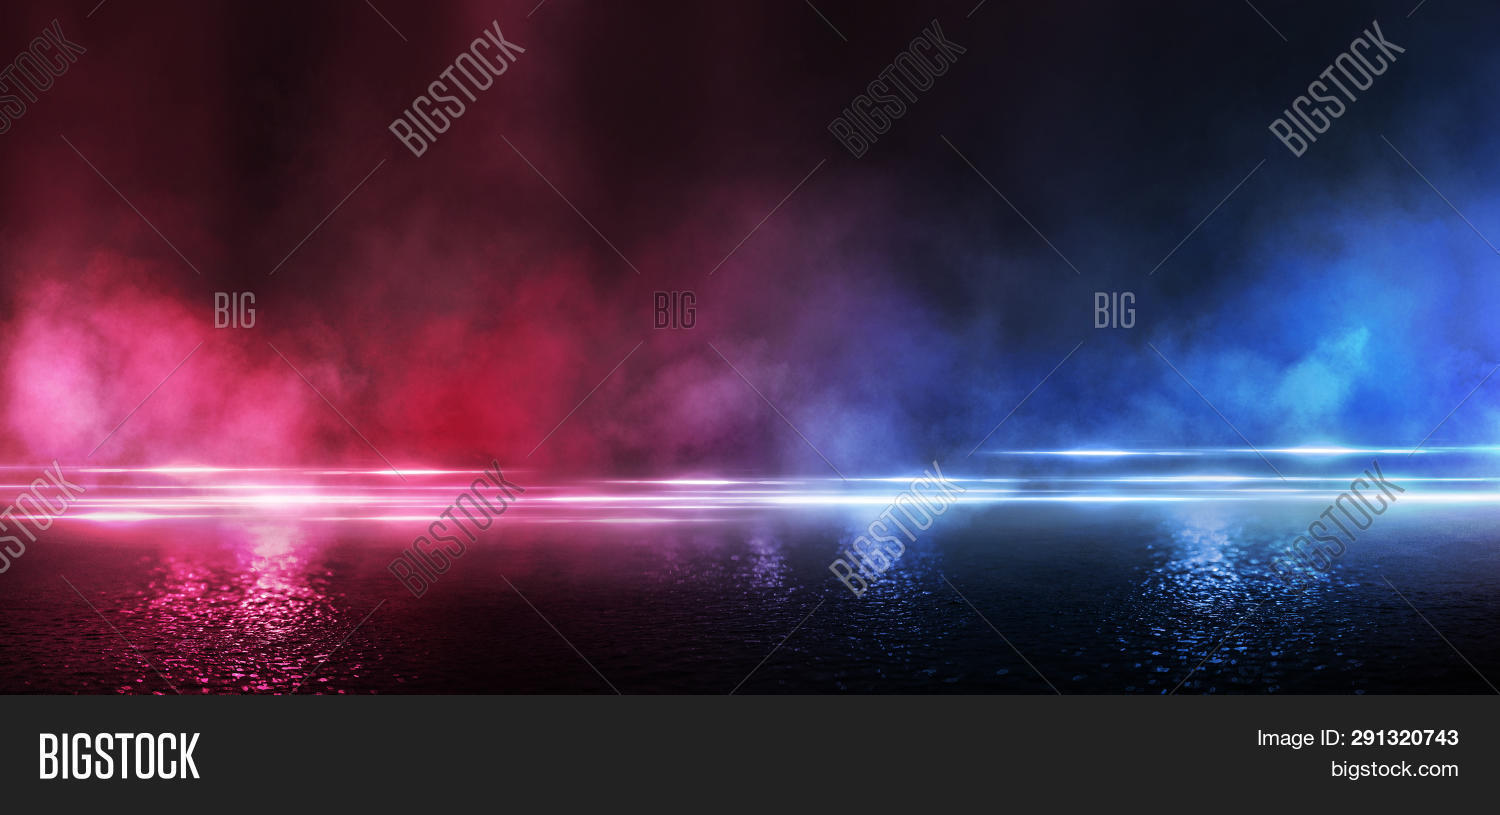 abstract,abstraction,asphalt,background,black,blank,cellar,cement,concept,concrete,copy,damp,dark,darkness,empty,environment,floor,fog,glitter,gray,grunge,hall,hard,horror,light,neon,night,old,place,quiet,ray,road,rock,room,rough,scary,scene,searchlight,smog,smoke,space,spotlight,stage,street,studio,template,texture,textured,wall,wet